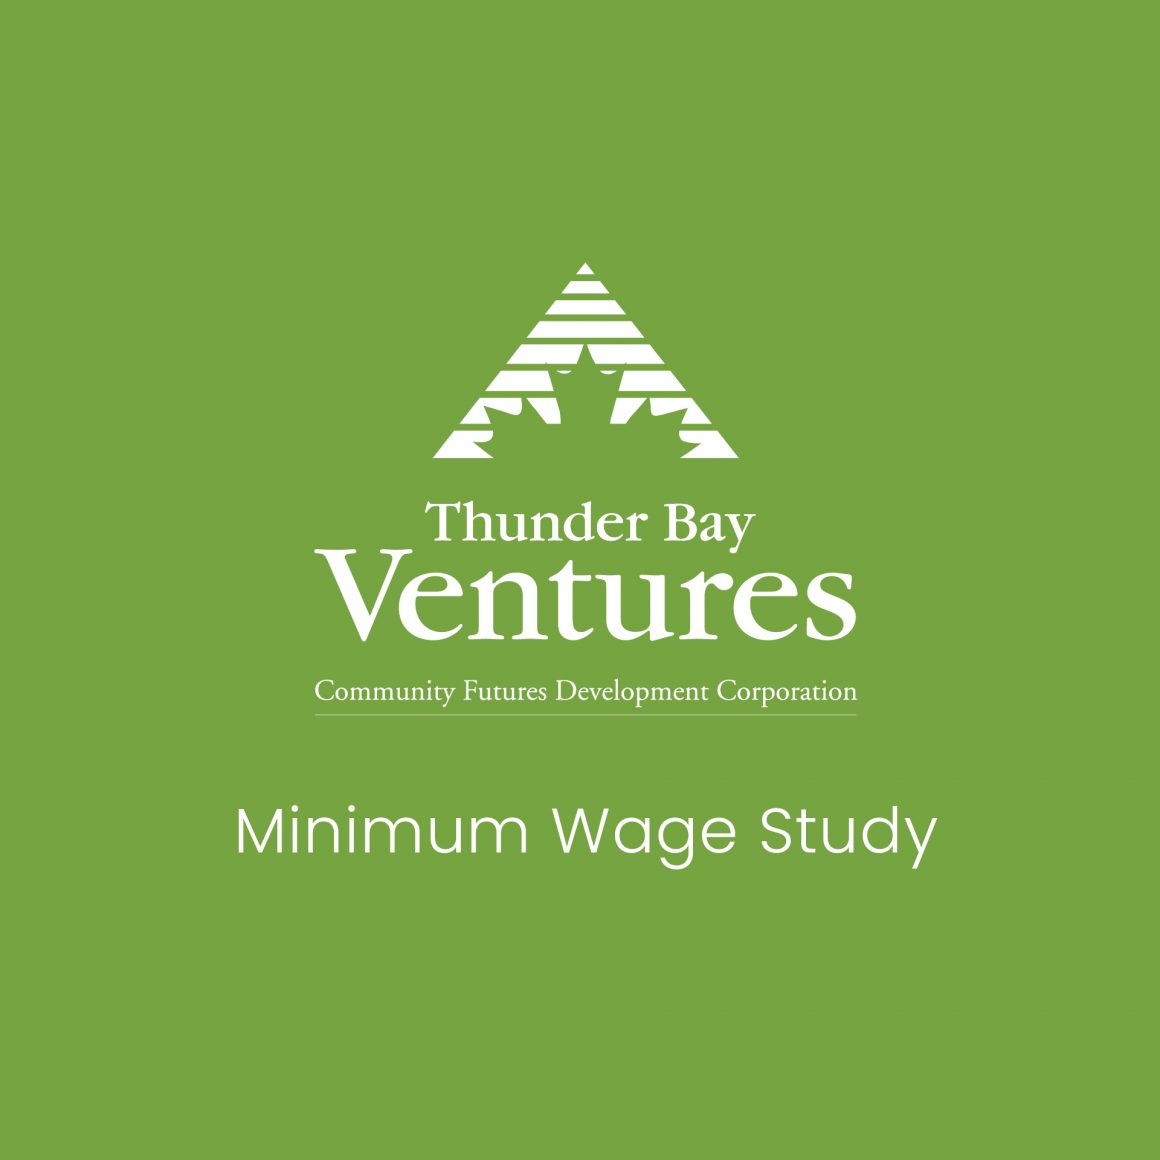 Minimum Wage Study